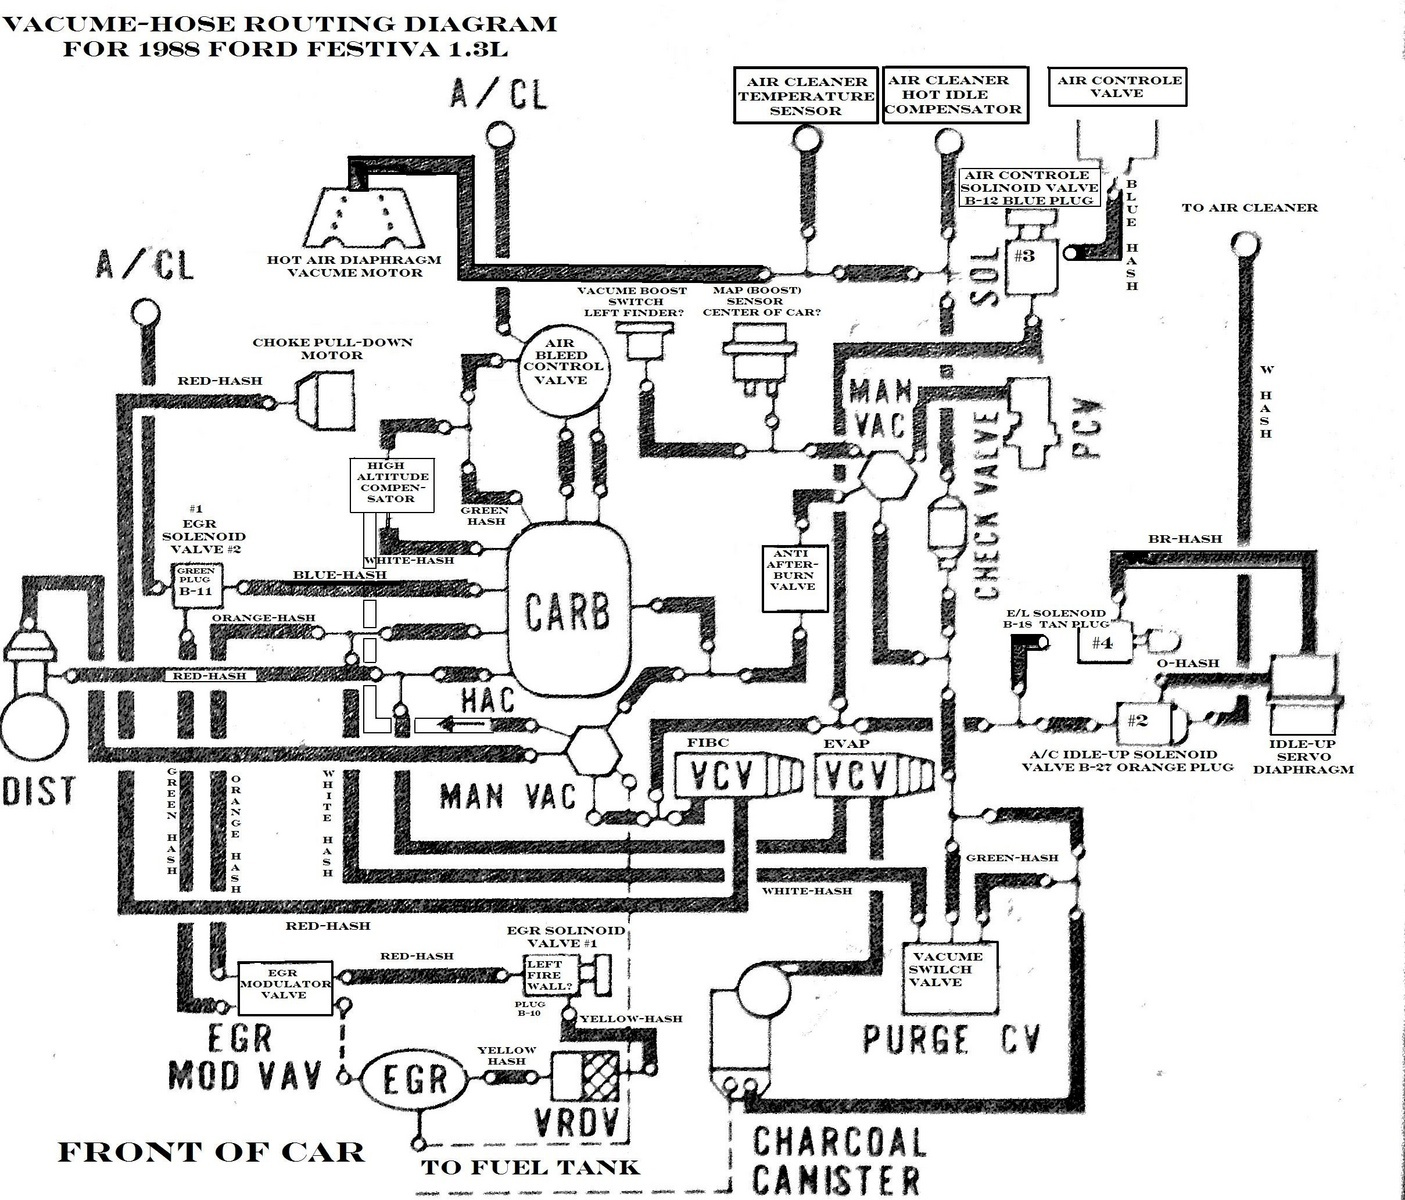 93 Ford Festiva Wiring Diagram - wiring diagrams schematics